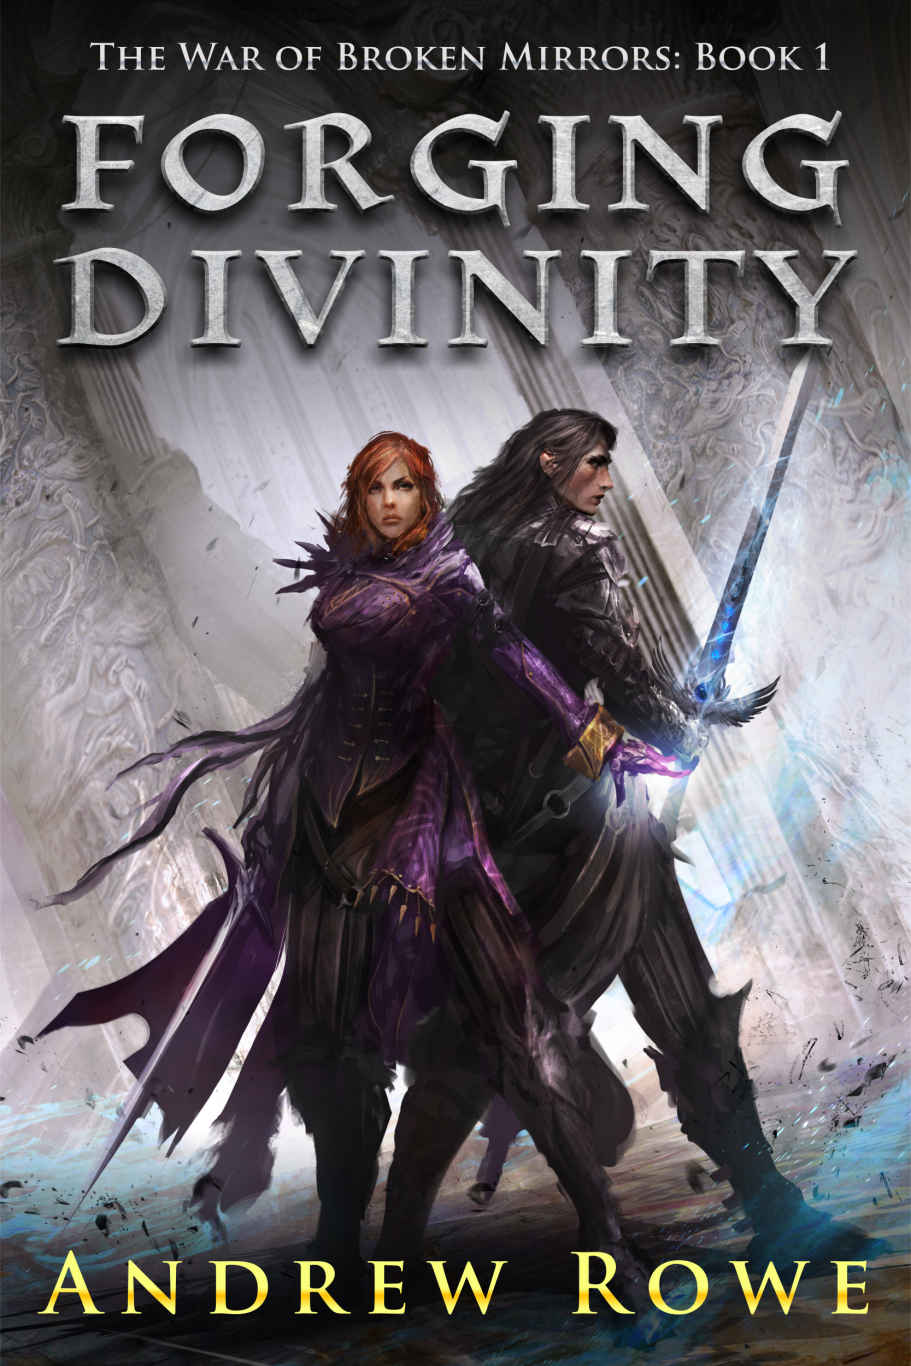 Forging Divinity by Andrew Rowe (The War of Broken Mirrors #1)